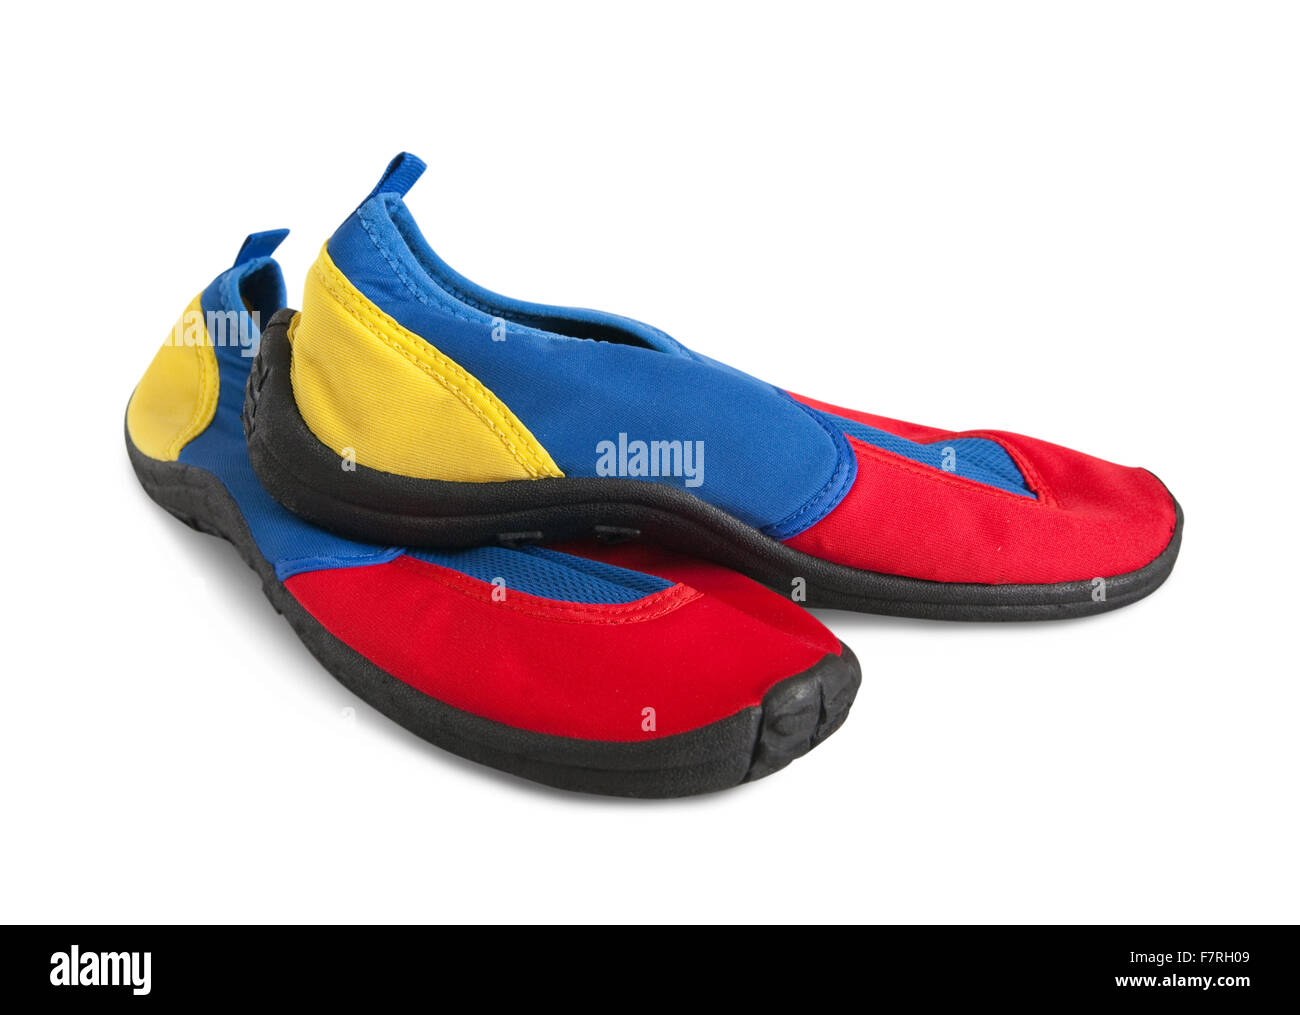 bc1140c67 Rubber Shoes Stock Photos   Rubber Shoes Stock Images - Alamy